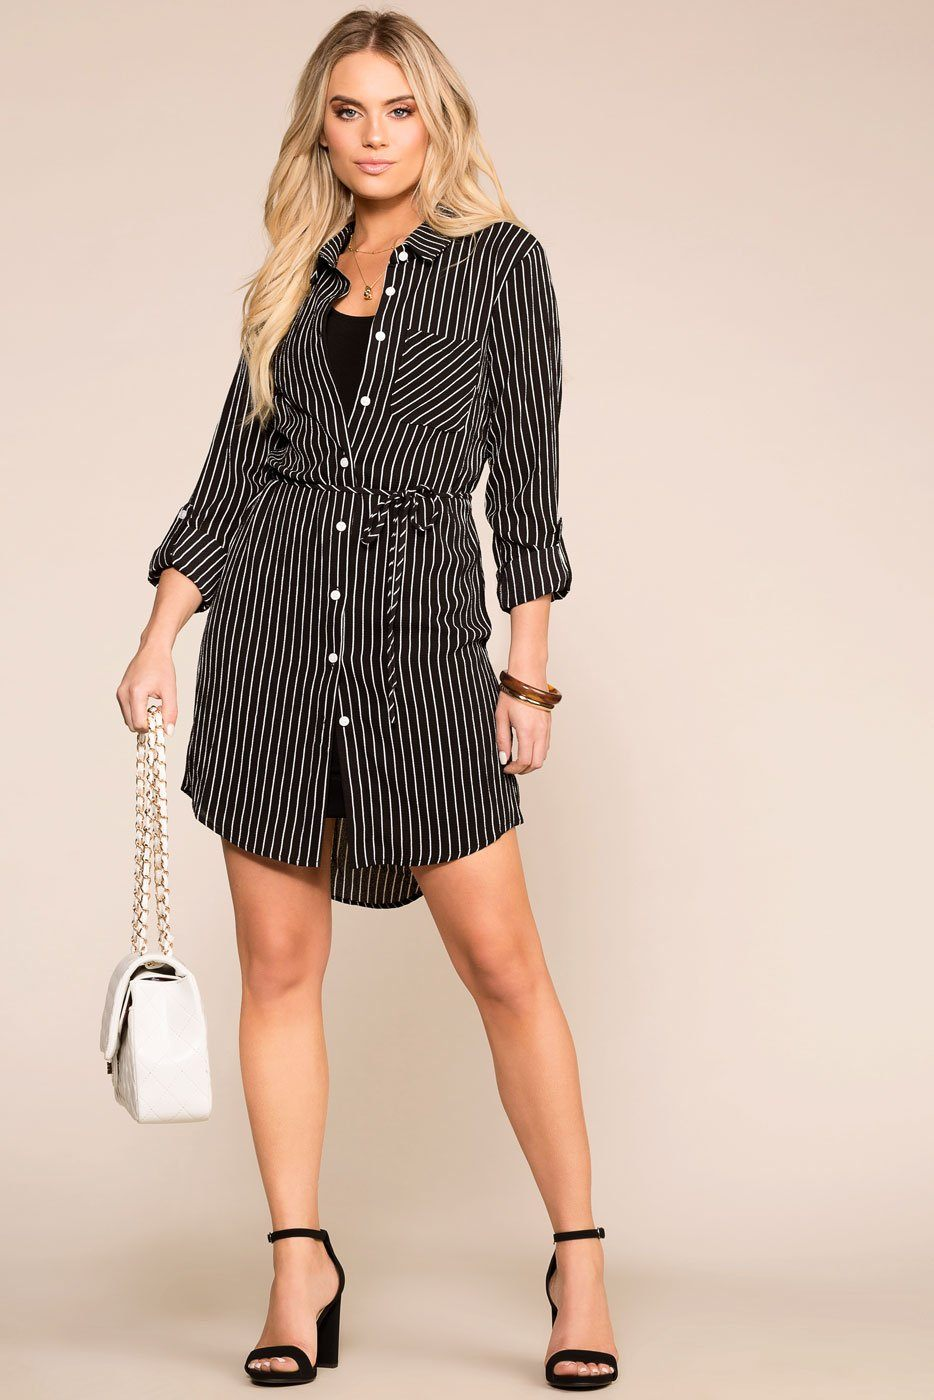 Do It Yourself Black Stripe Button Up Dress | Shop Priceless